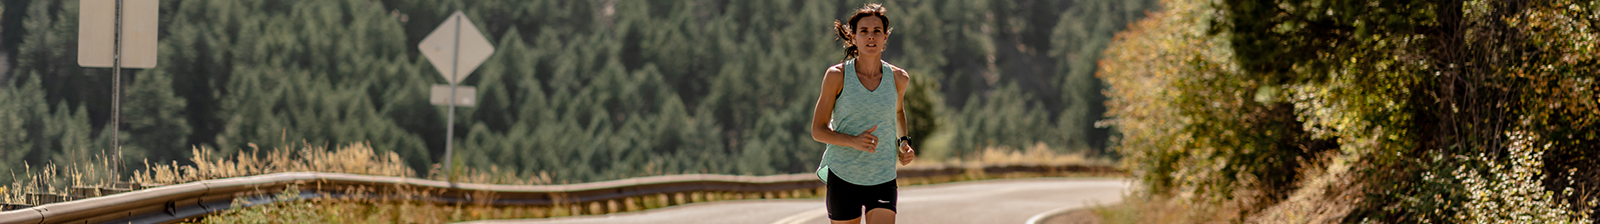 Saucony - Women's Running and Casual Shoes and Apparel